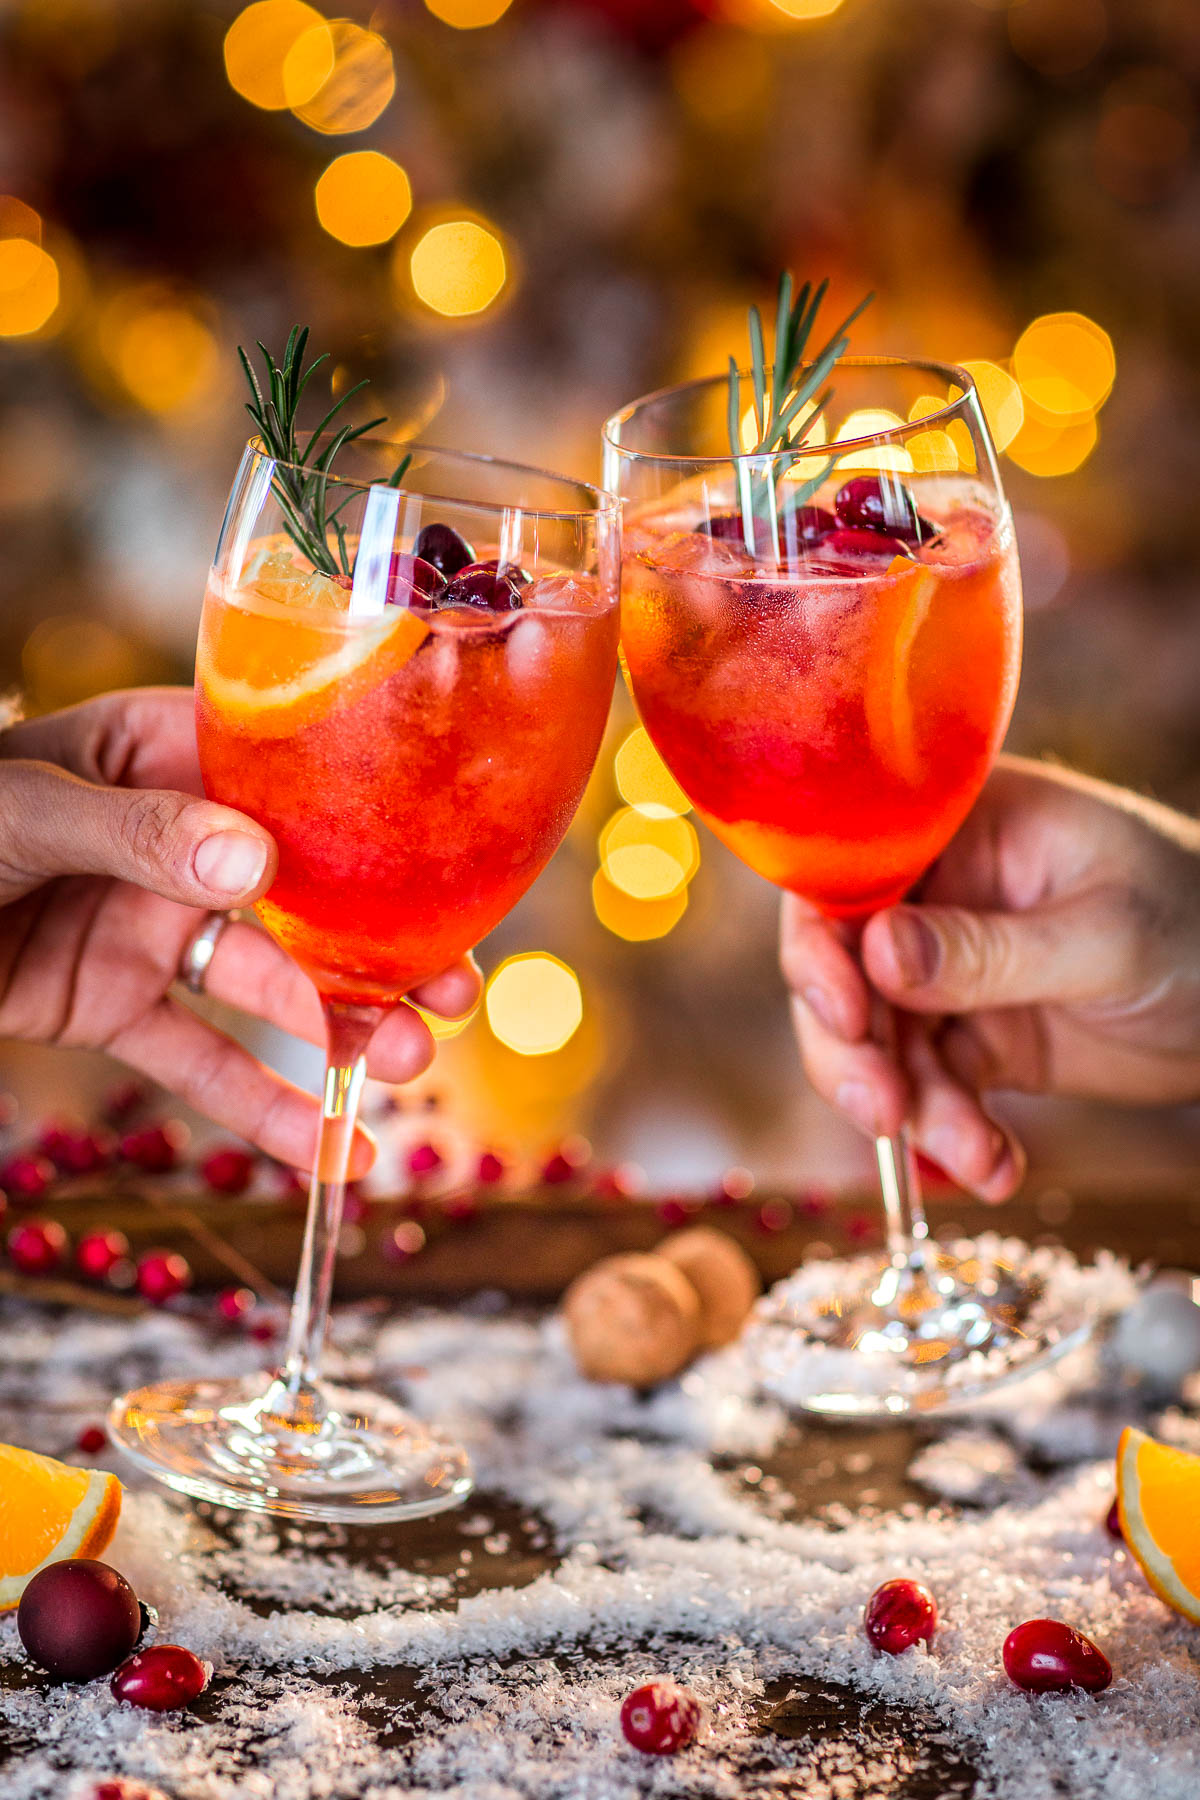 WINTER HOLIDAY CHRISTMAS SPRITZER recipe home made with orange and cranberry juice Ricetta SPRITZ di NATALE con succo di arance e cranberry mirtilli rossi | beautyfoodblog.com